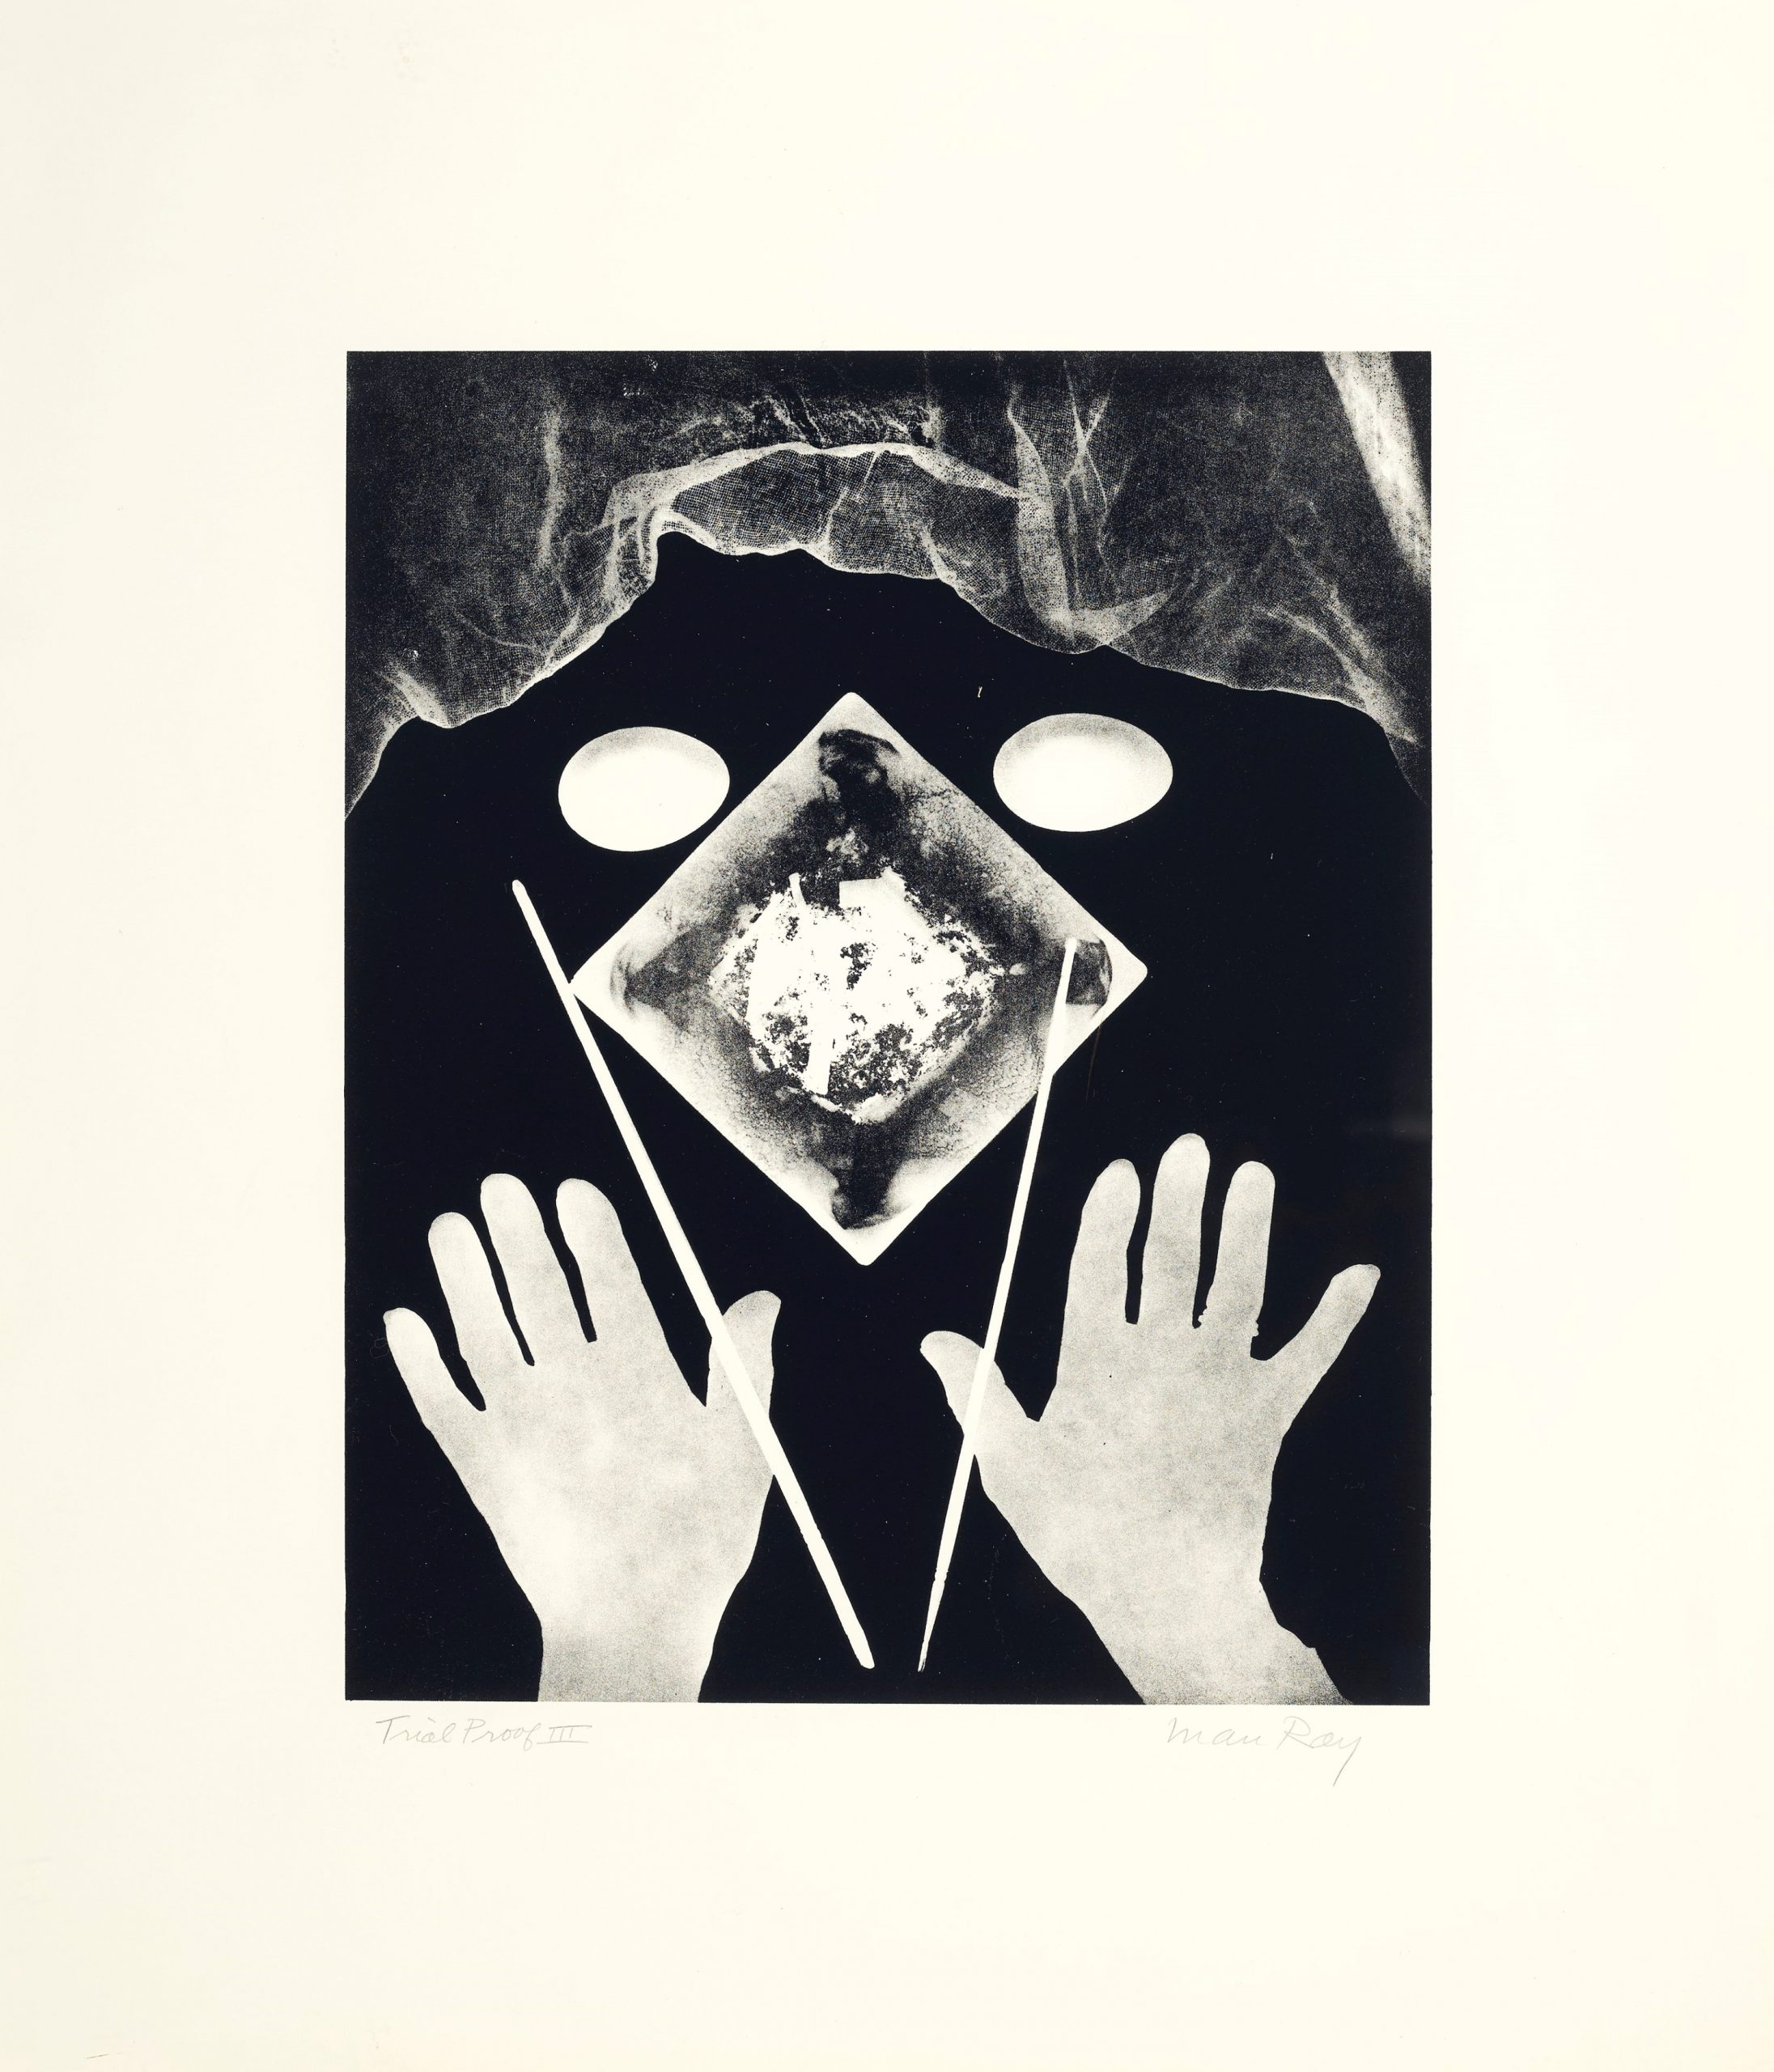 Hands And Eggs by Man Ray